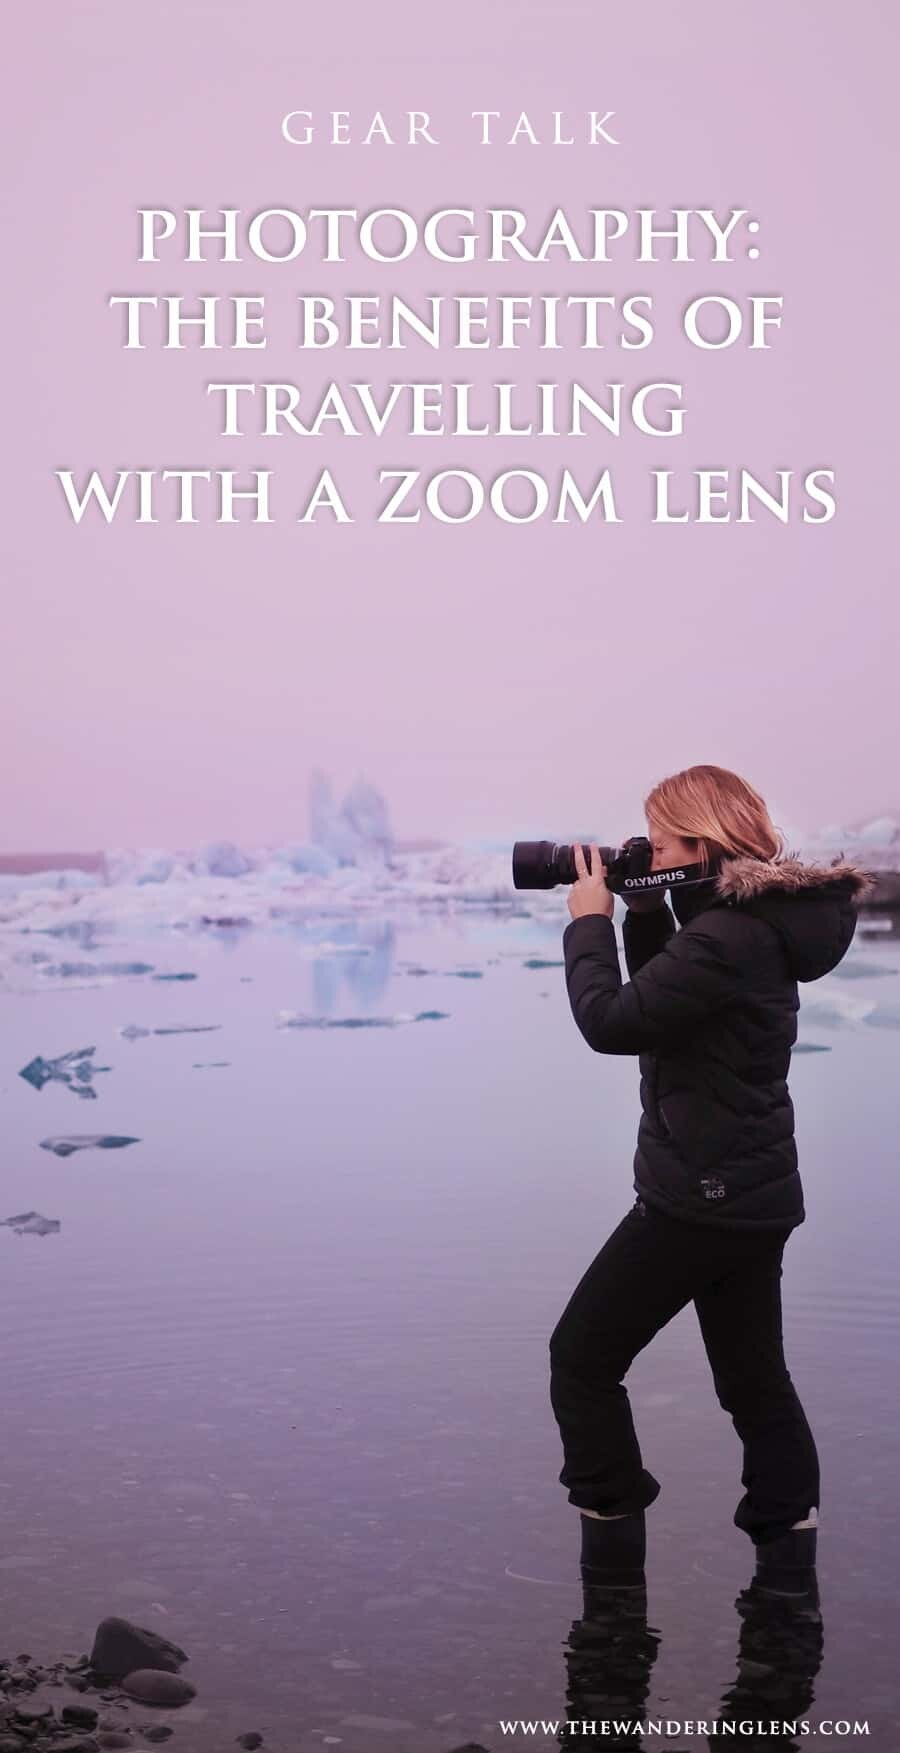 The Benefits of Travelling with a Zoom Lens